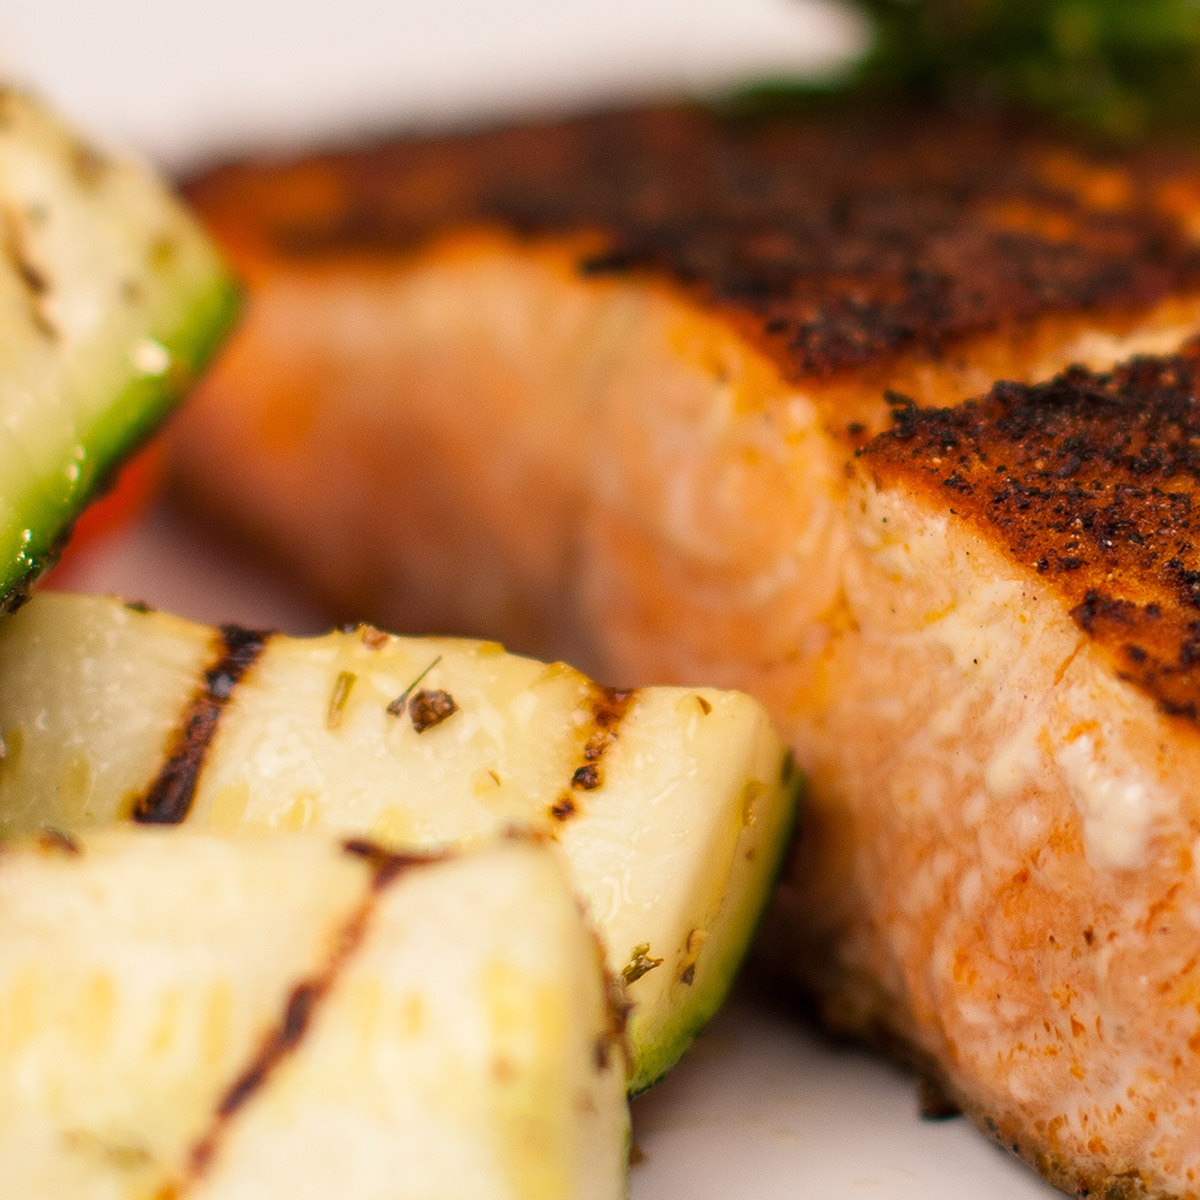 Spanish Blend Food suggestion - Cajun-spiced Blackened Fish